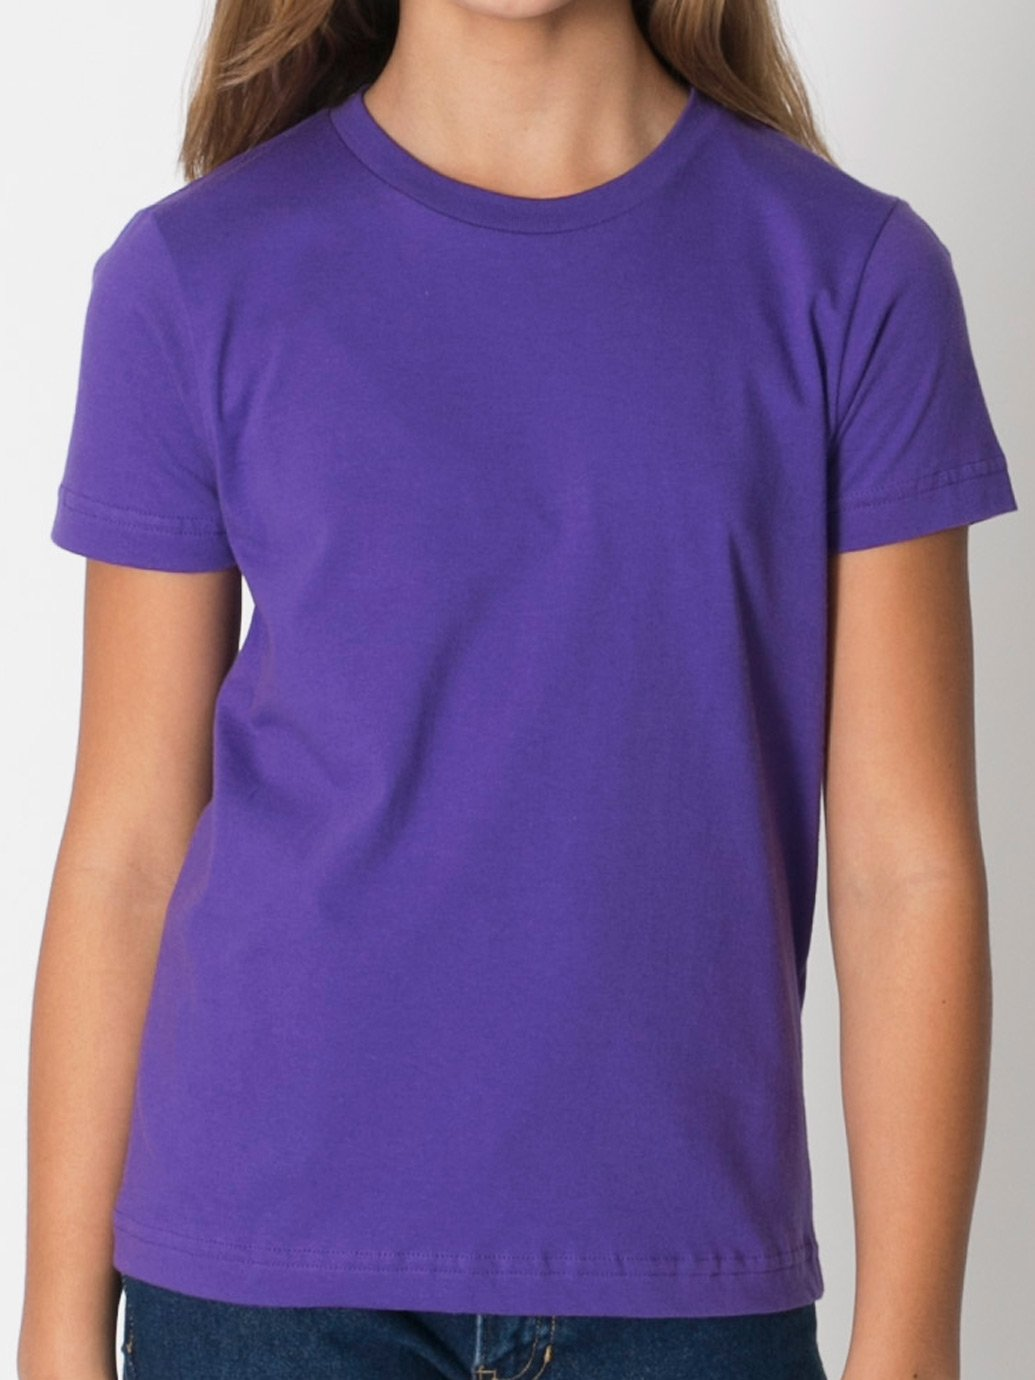 American Apparel Youth Fine Jersey Short Sleeve T-Shirt - Evan ...